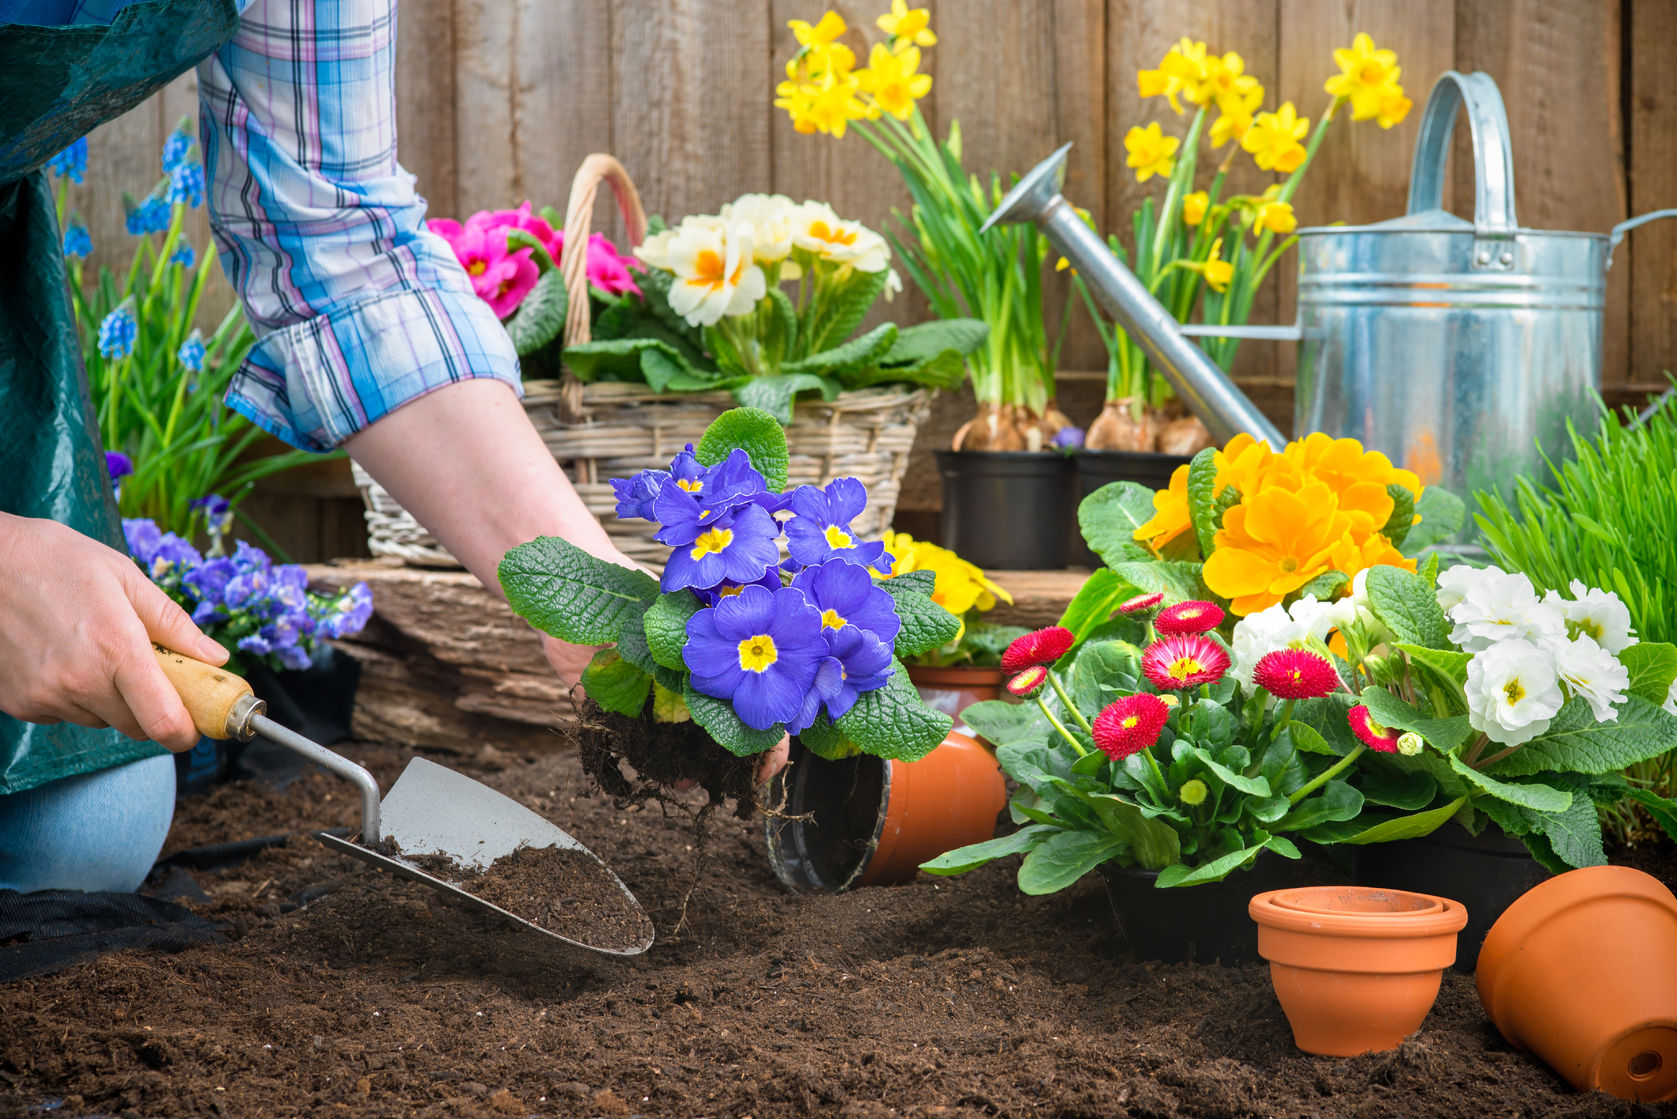 Garden Preparation  https://www.info-on-high-blood-pressure.com/Health-Benefits-Of-Gardening.html